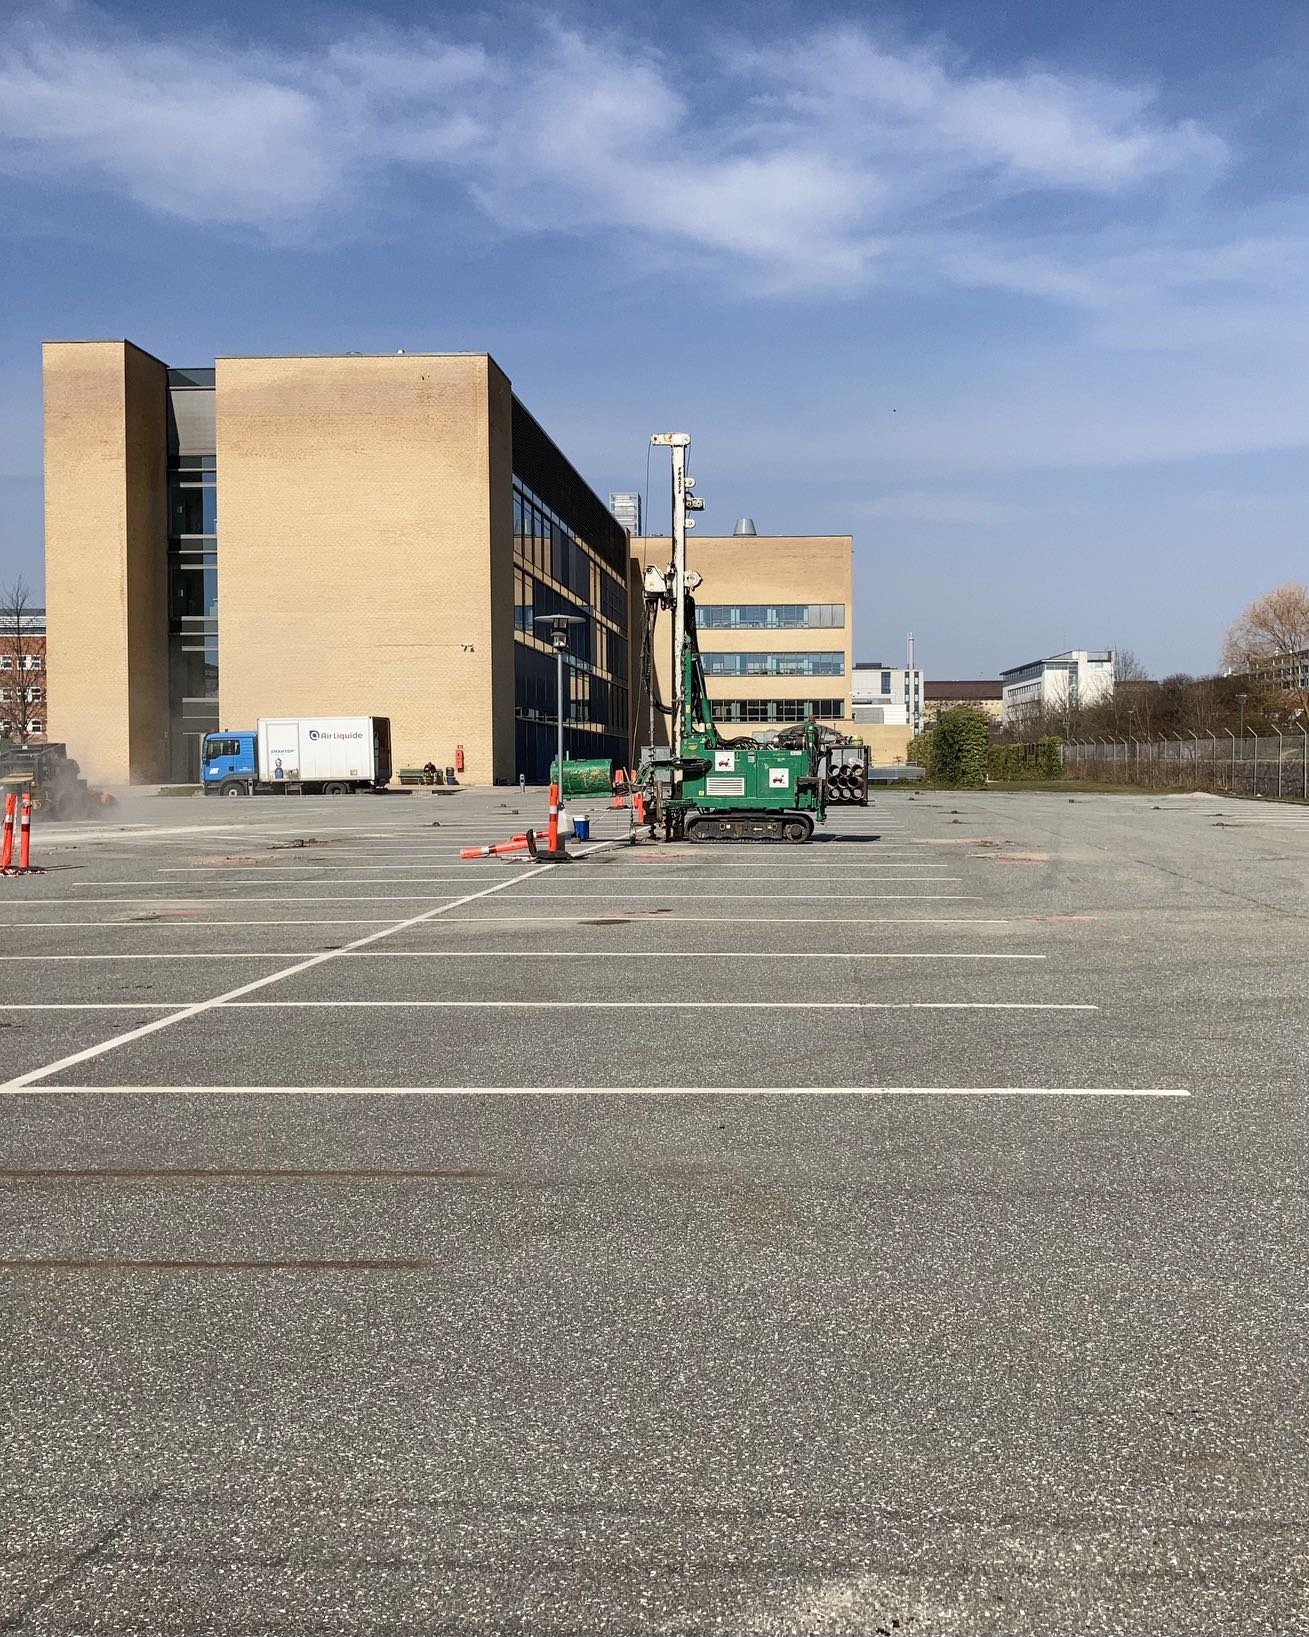 """This is a picture of a drill in the Lundbeck parking lot close to where I live. God knows what they're up to. A grid of holes and more going down. For some reason got me thinking of Craig Mod's """"Postcards from the Baikonur Cosmodrome""""."""